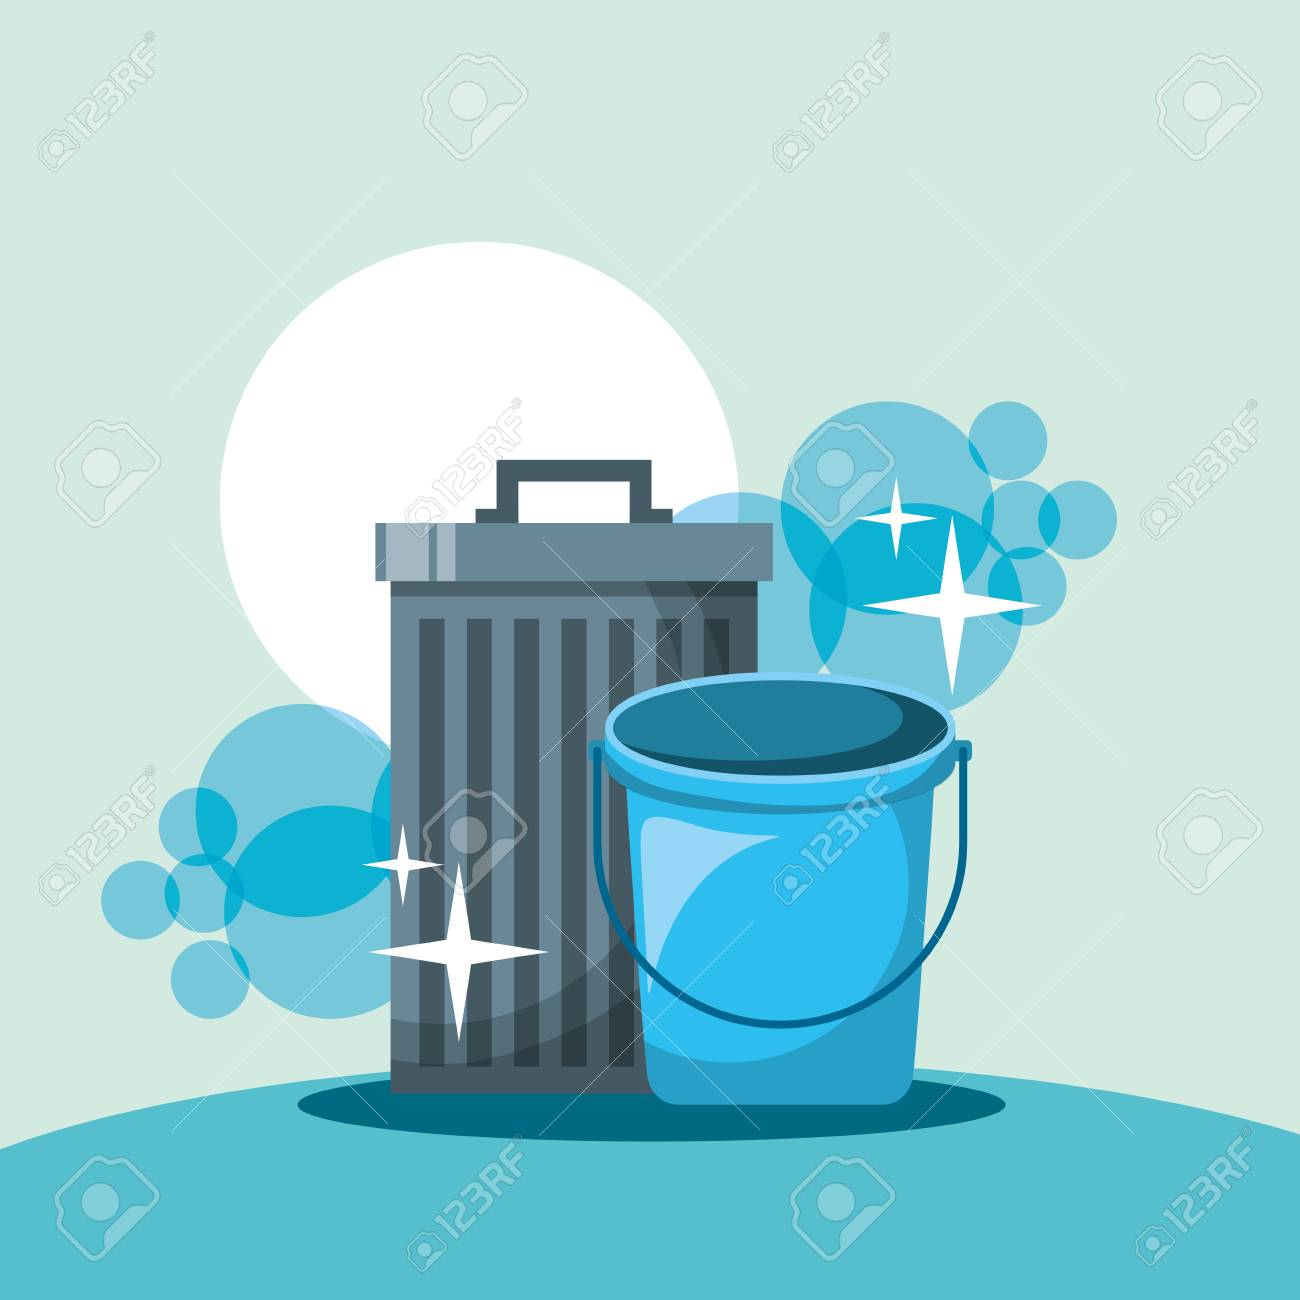 trash can bucket cleaning tools vector illustration - 111977419